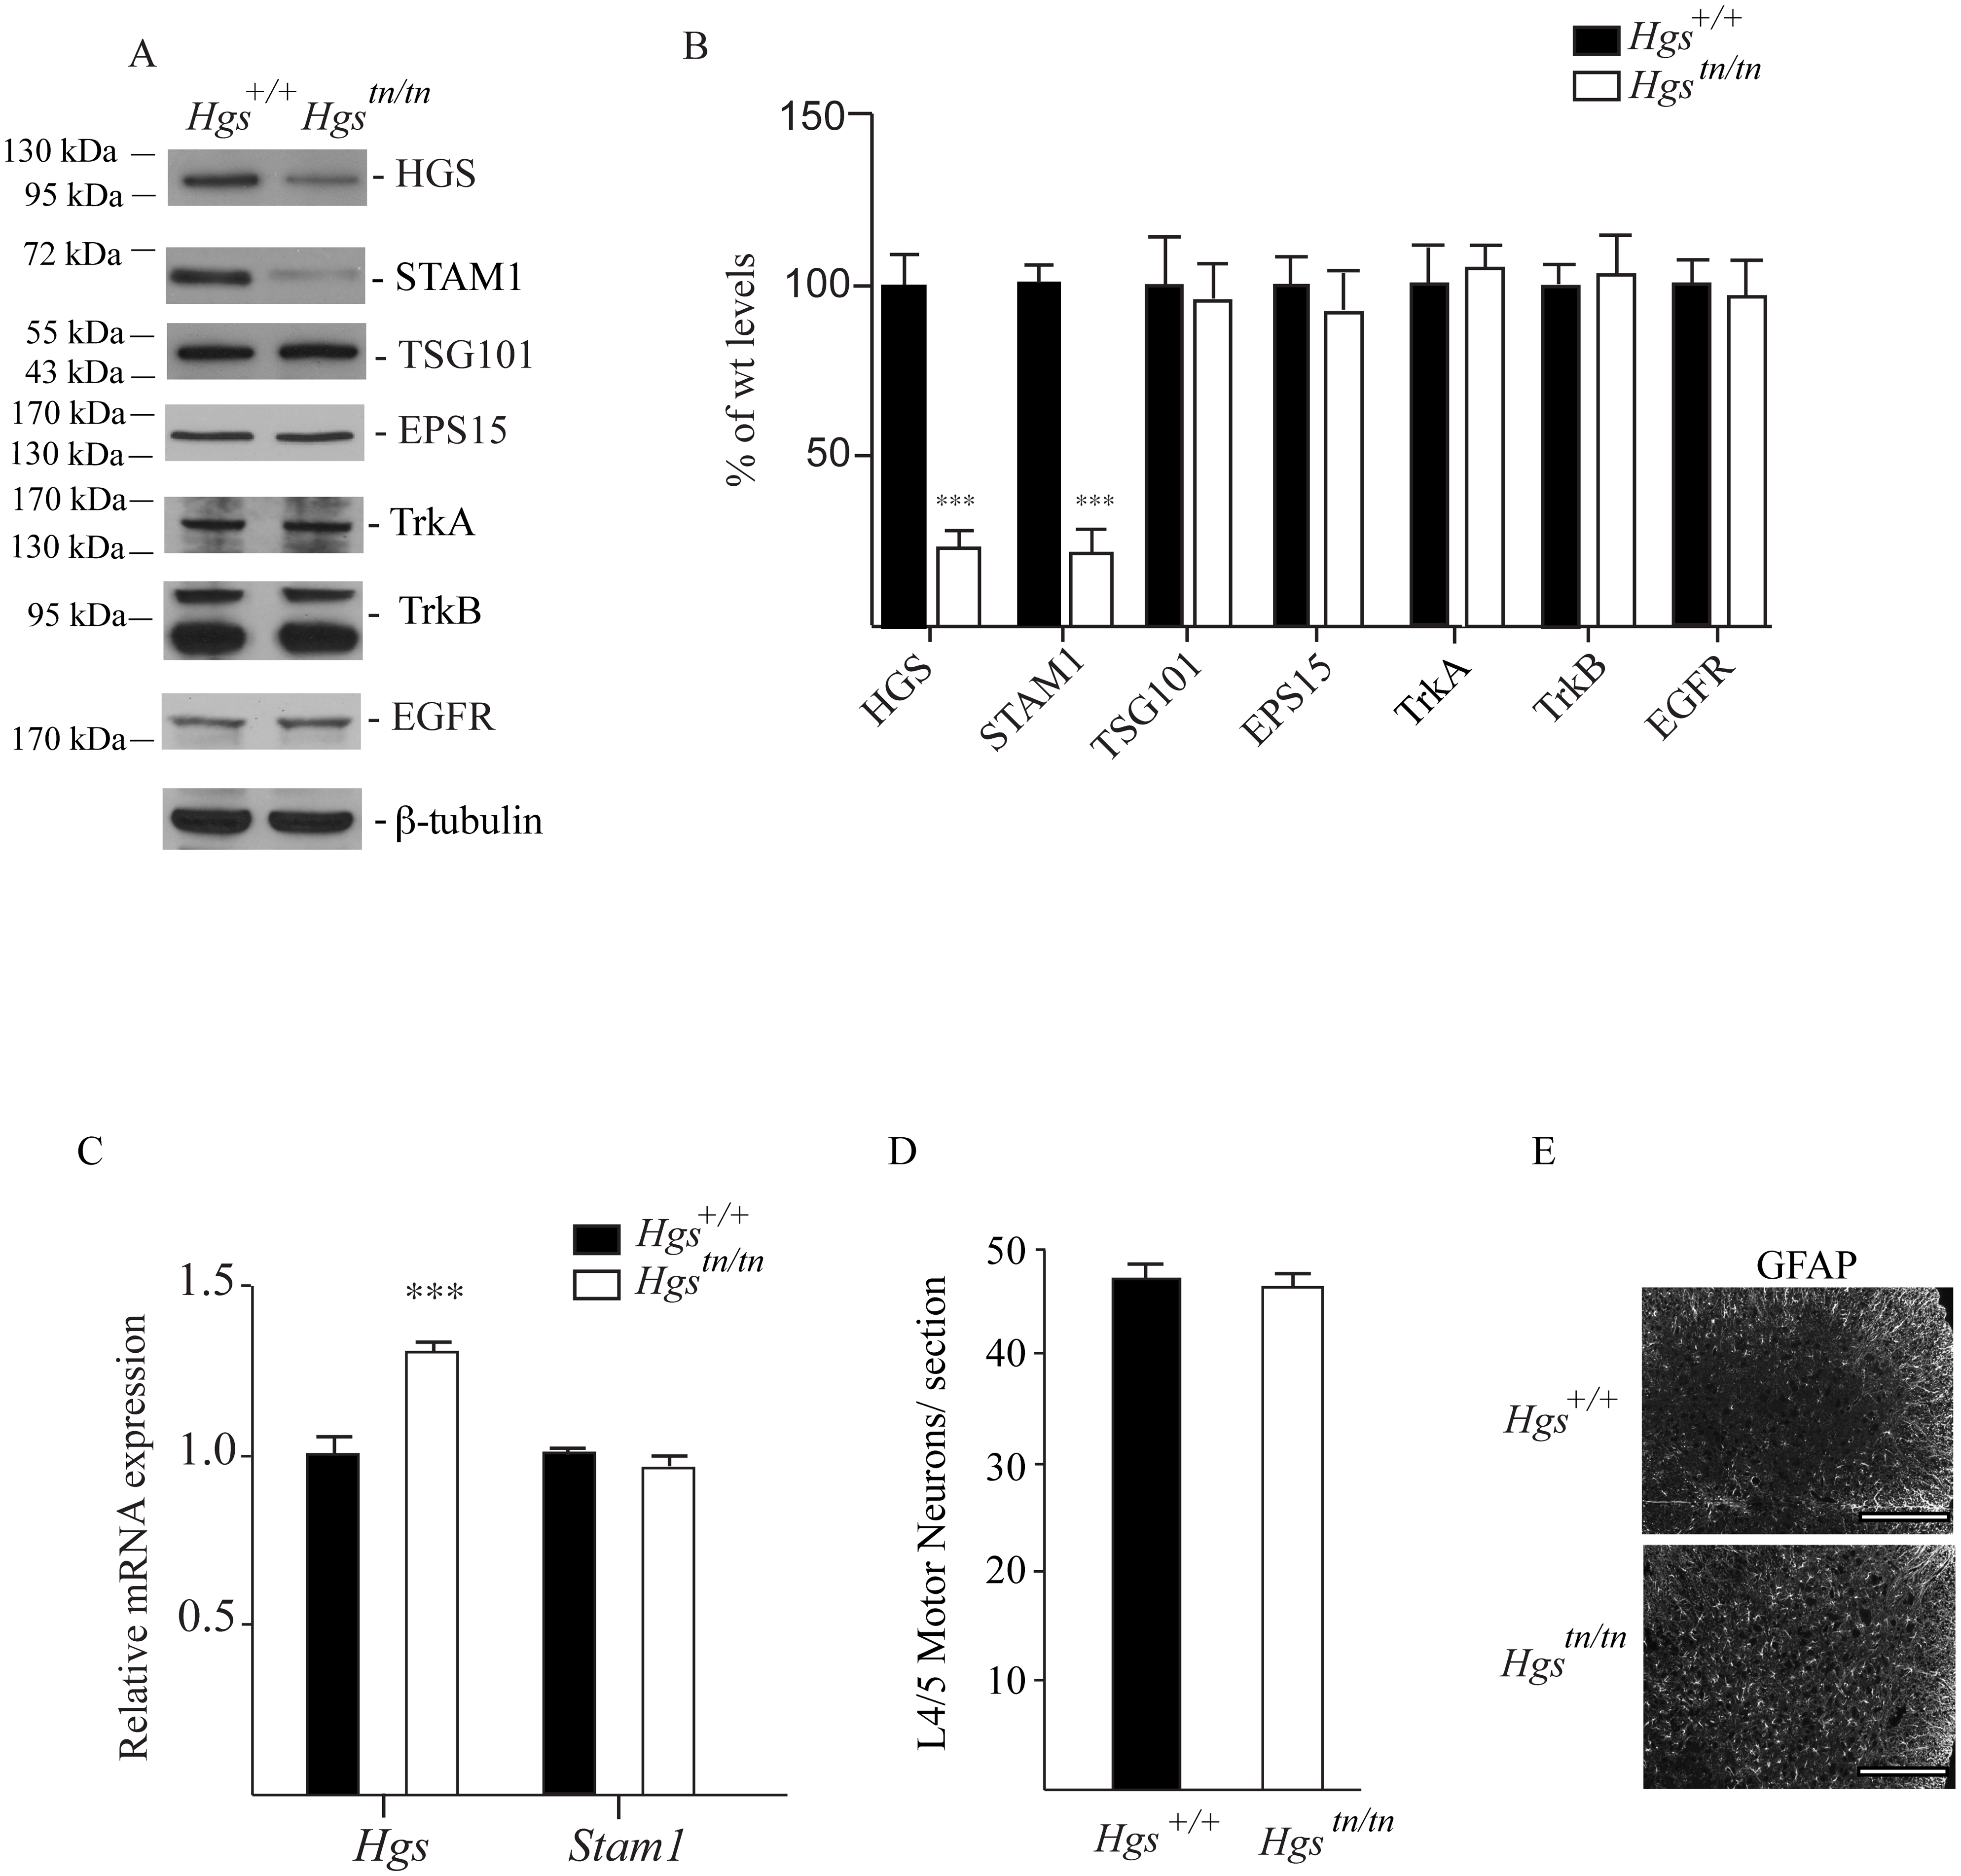 Levels of HGS-interacting proteins and putative substrates in spinal cord extracts of 4-week-old <i>Hgs</i><sup><i>+/+</i></sup> and <i>Hgs</i><sup><i>tn/tn</i></sup> mice.